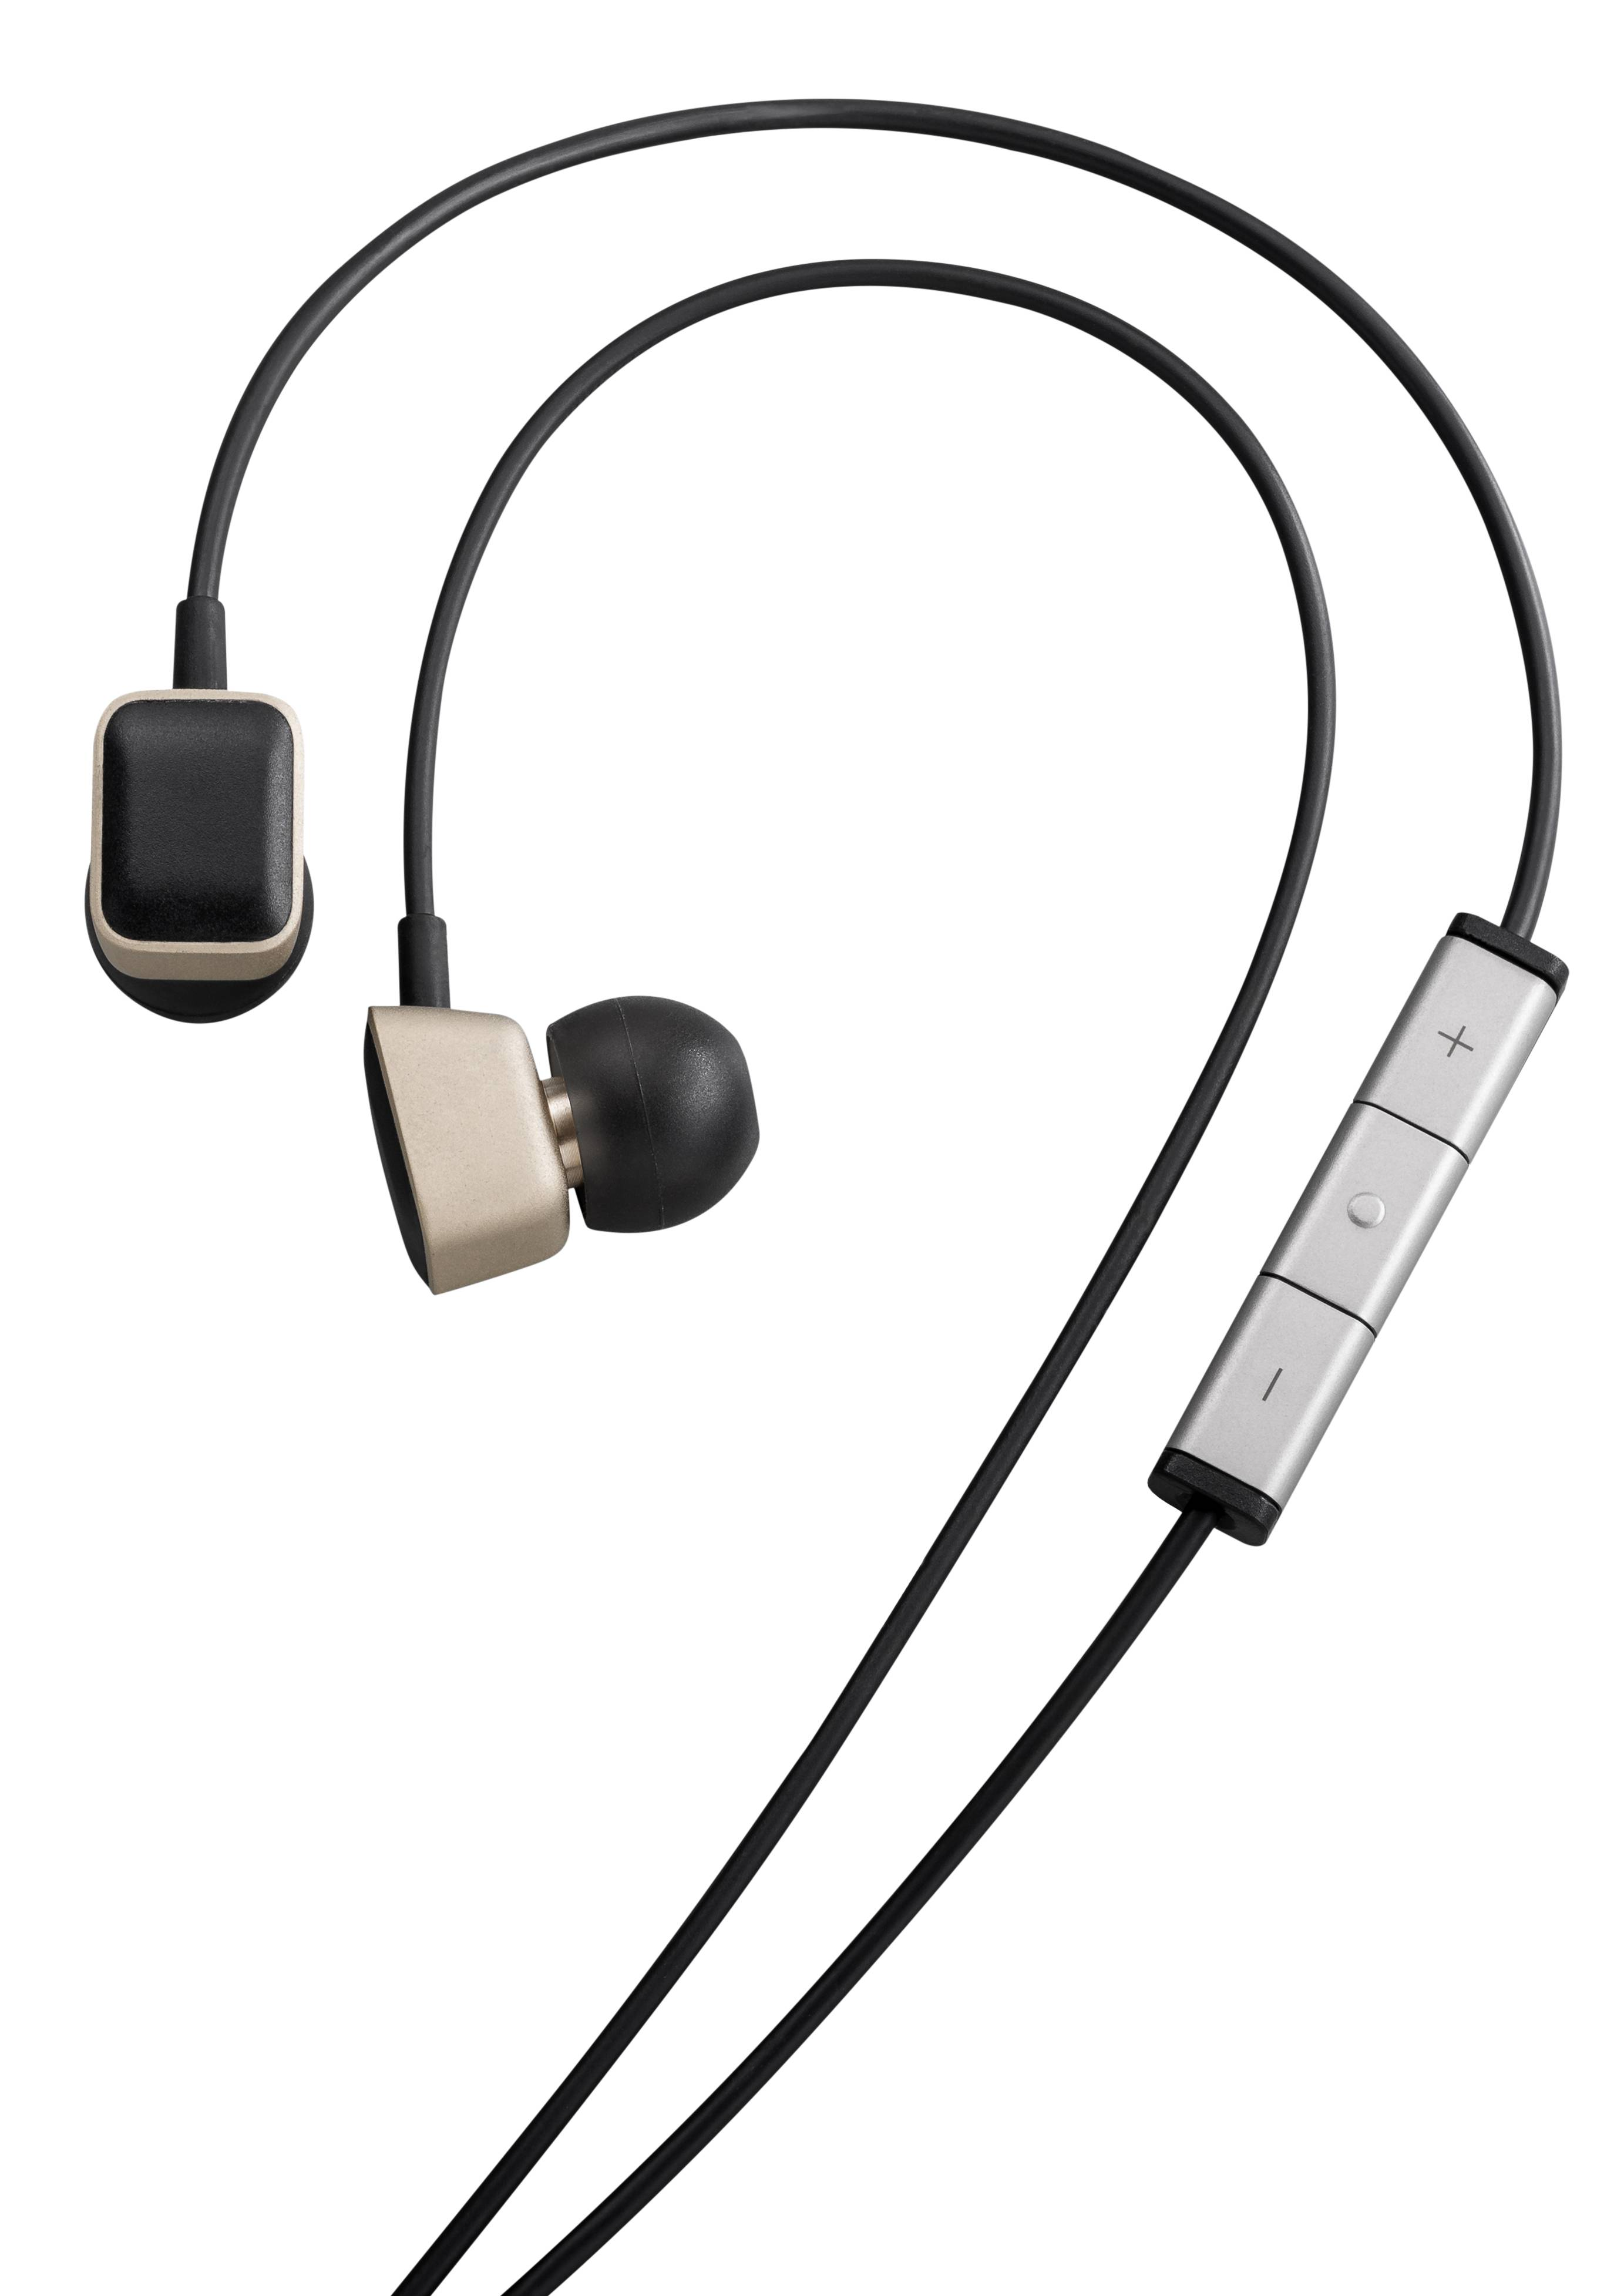 This product image provided by Harmon Kardon shows a set of AE-S Premium headphones that comes with the HTC One M8 smartphone. The phone features Clari-Fi, a new technology from Harman Kardon, which aims to restore some of the audio signal that is lost because of digital compression in today's download and streaming formats.